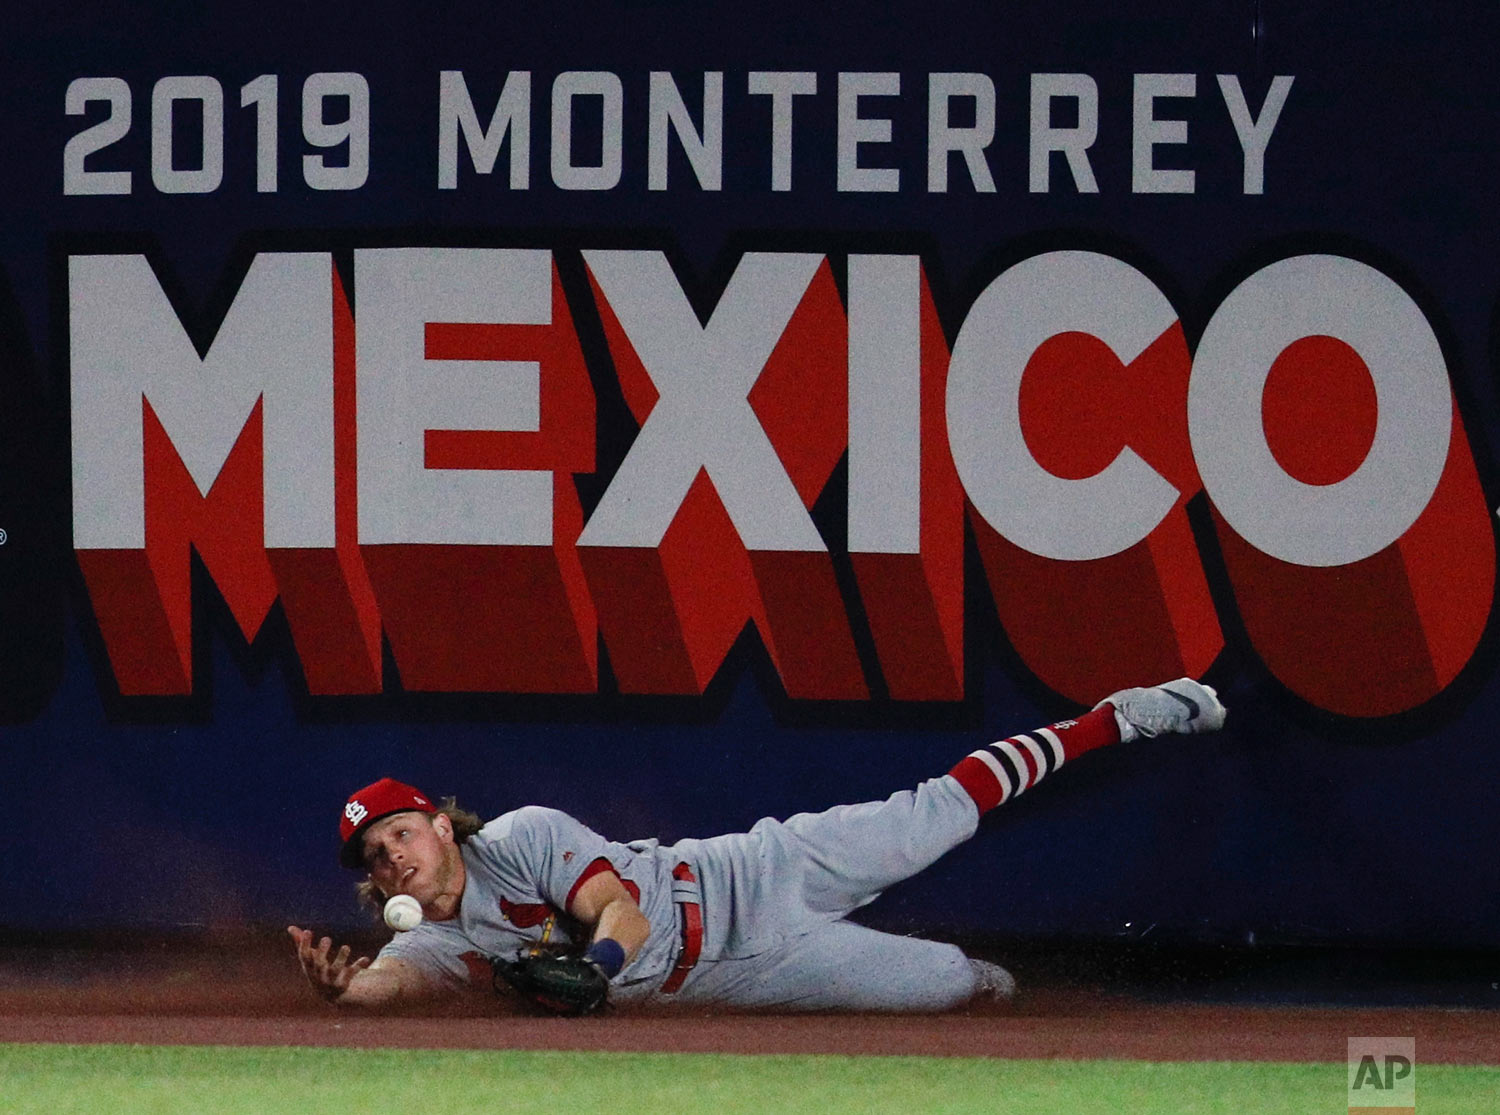 St. Louis Cardinals' Harrison Bader can't make the catch on a triple by Cincinnati Reds' Phillip Ervin during the eighth inning of a baseball game in Monterrey, Mexico, April 13, 2019. The Reds defeated the Cardinals 5-2. (AP Photo/Rebecca Blackwell)